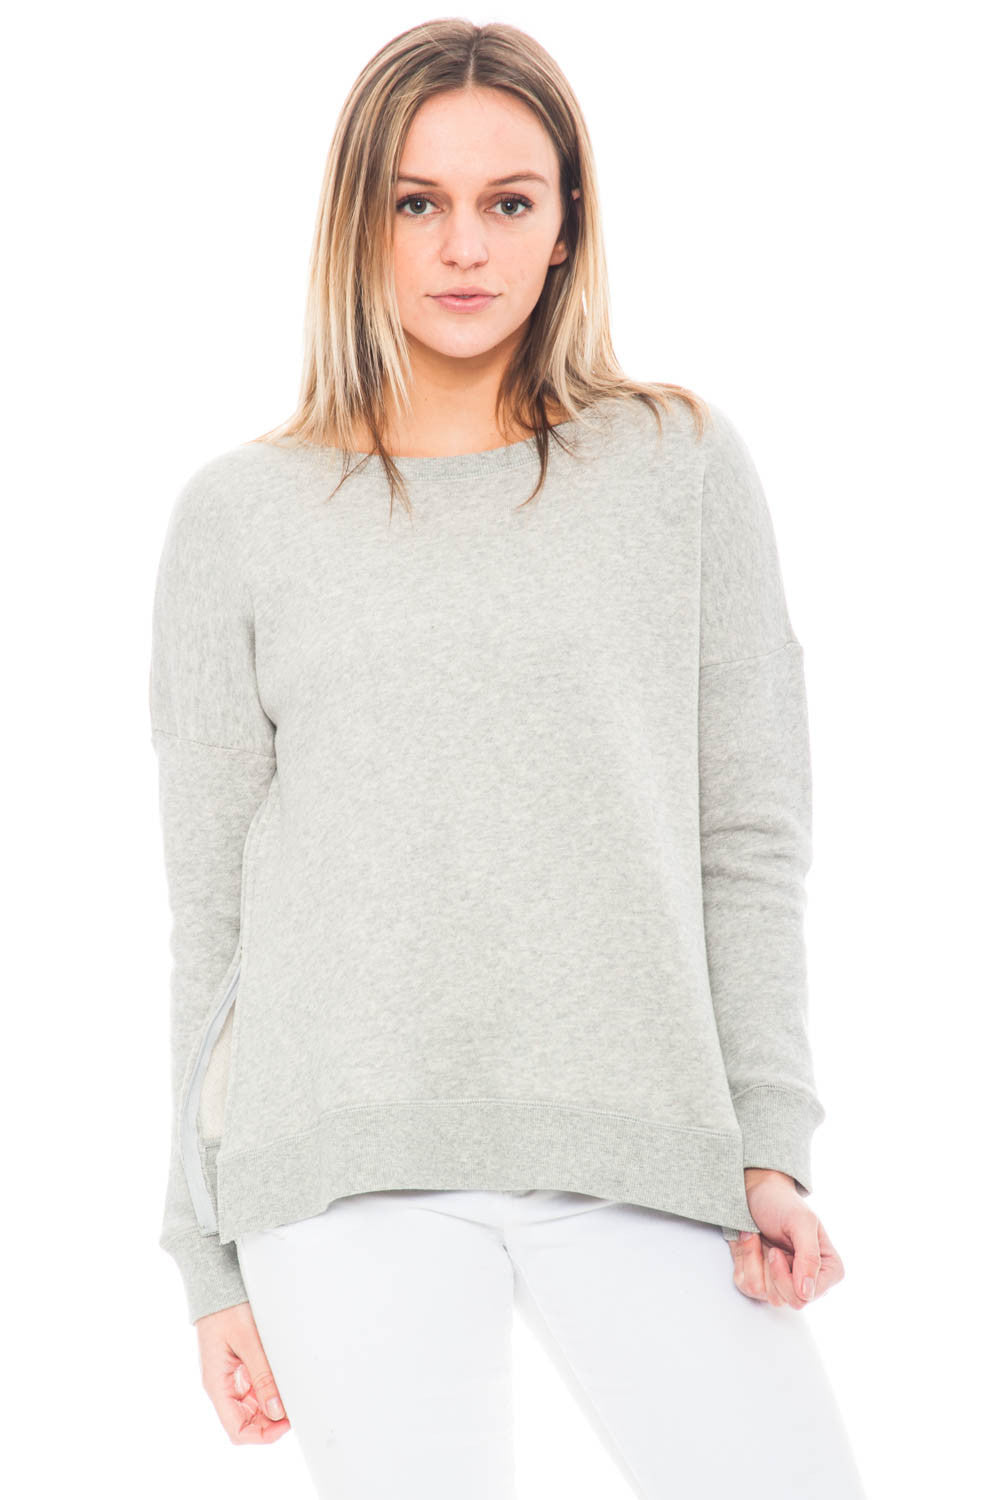 Sweater - Side Zip Mischa Crewneck by BB Dakota